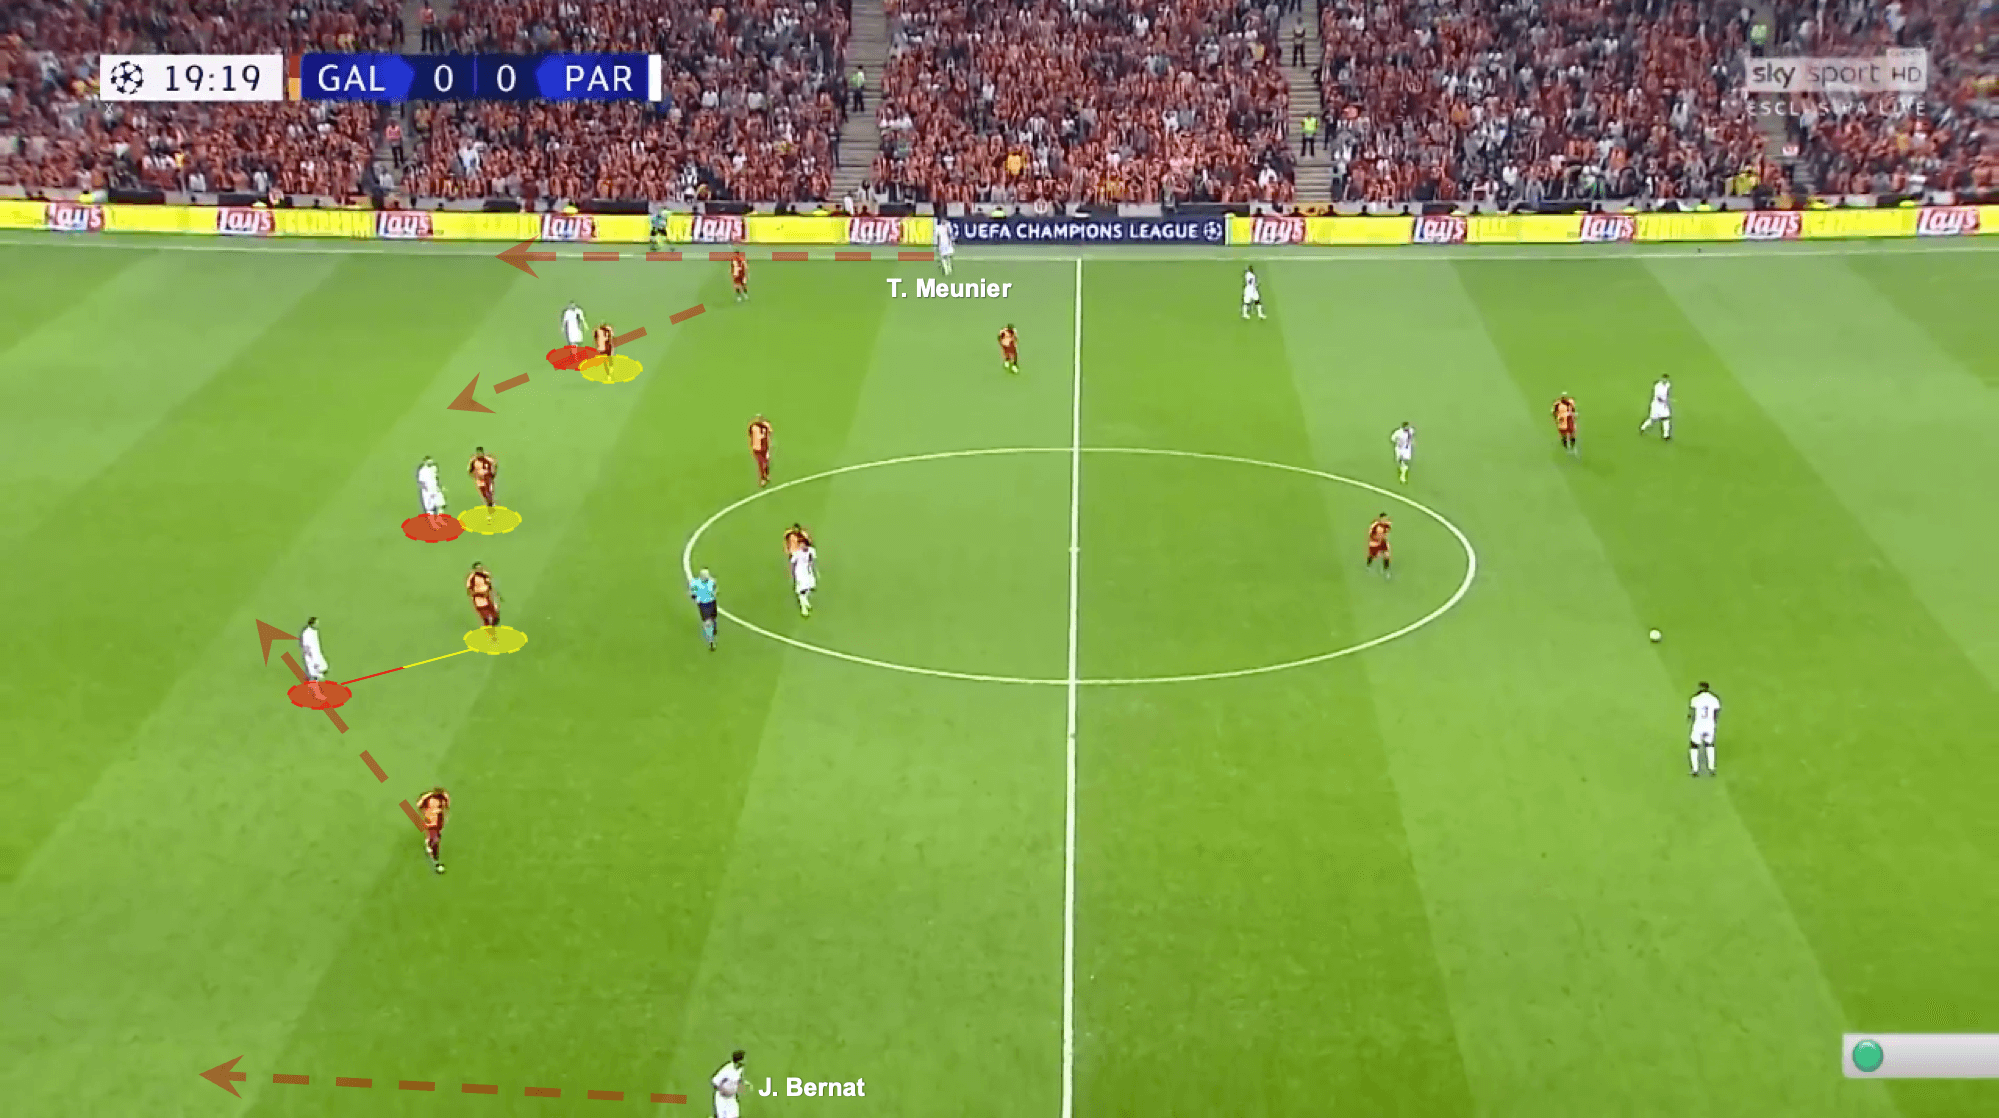 UEFA Champions League 2019/20: Galatasaray vs PSG - Tactical Analysis tactics